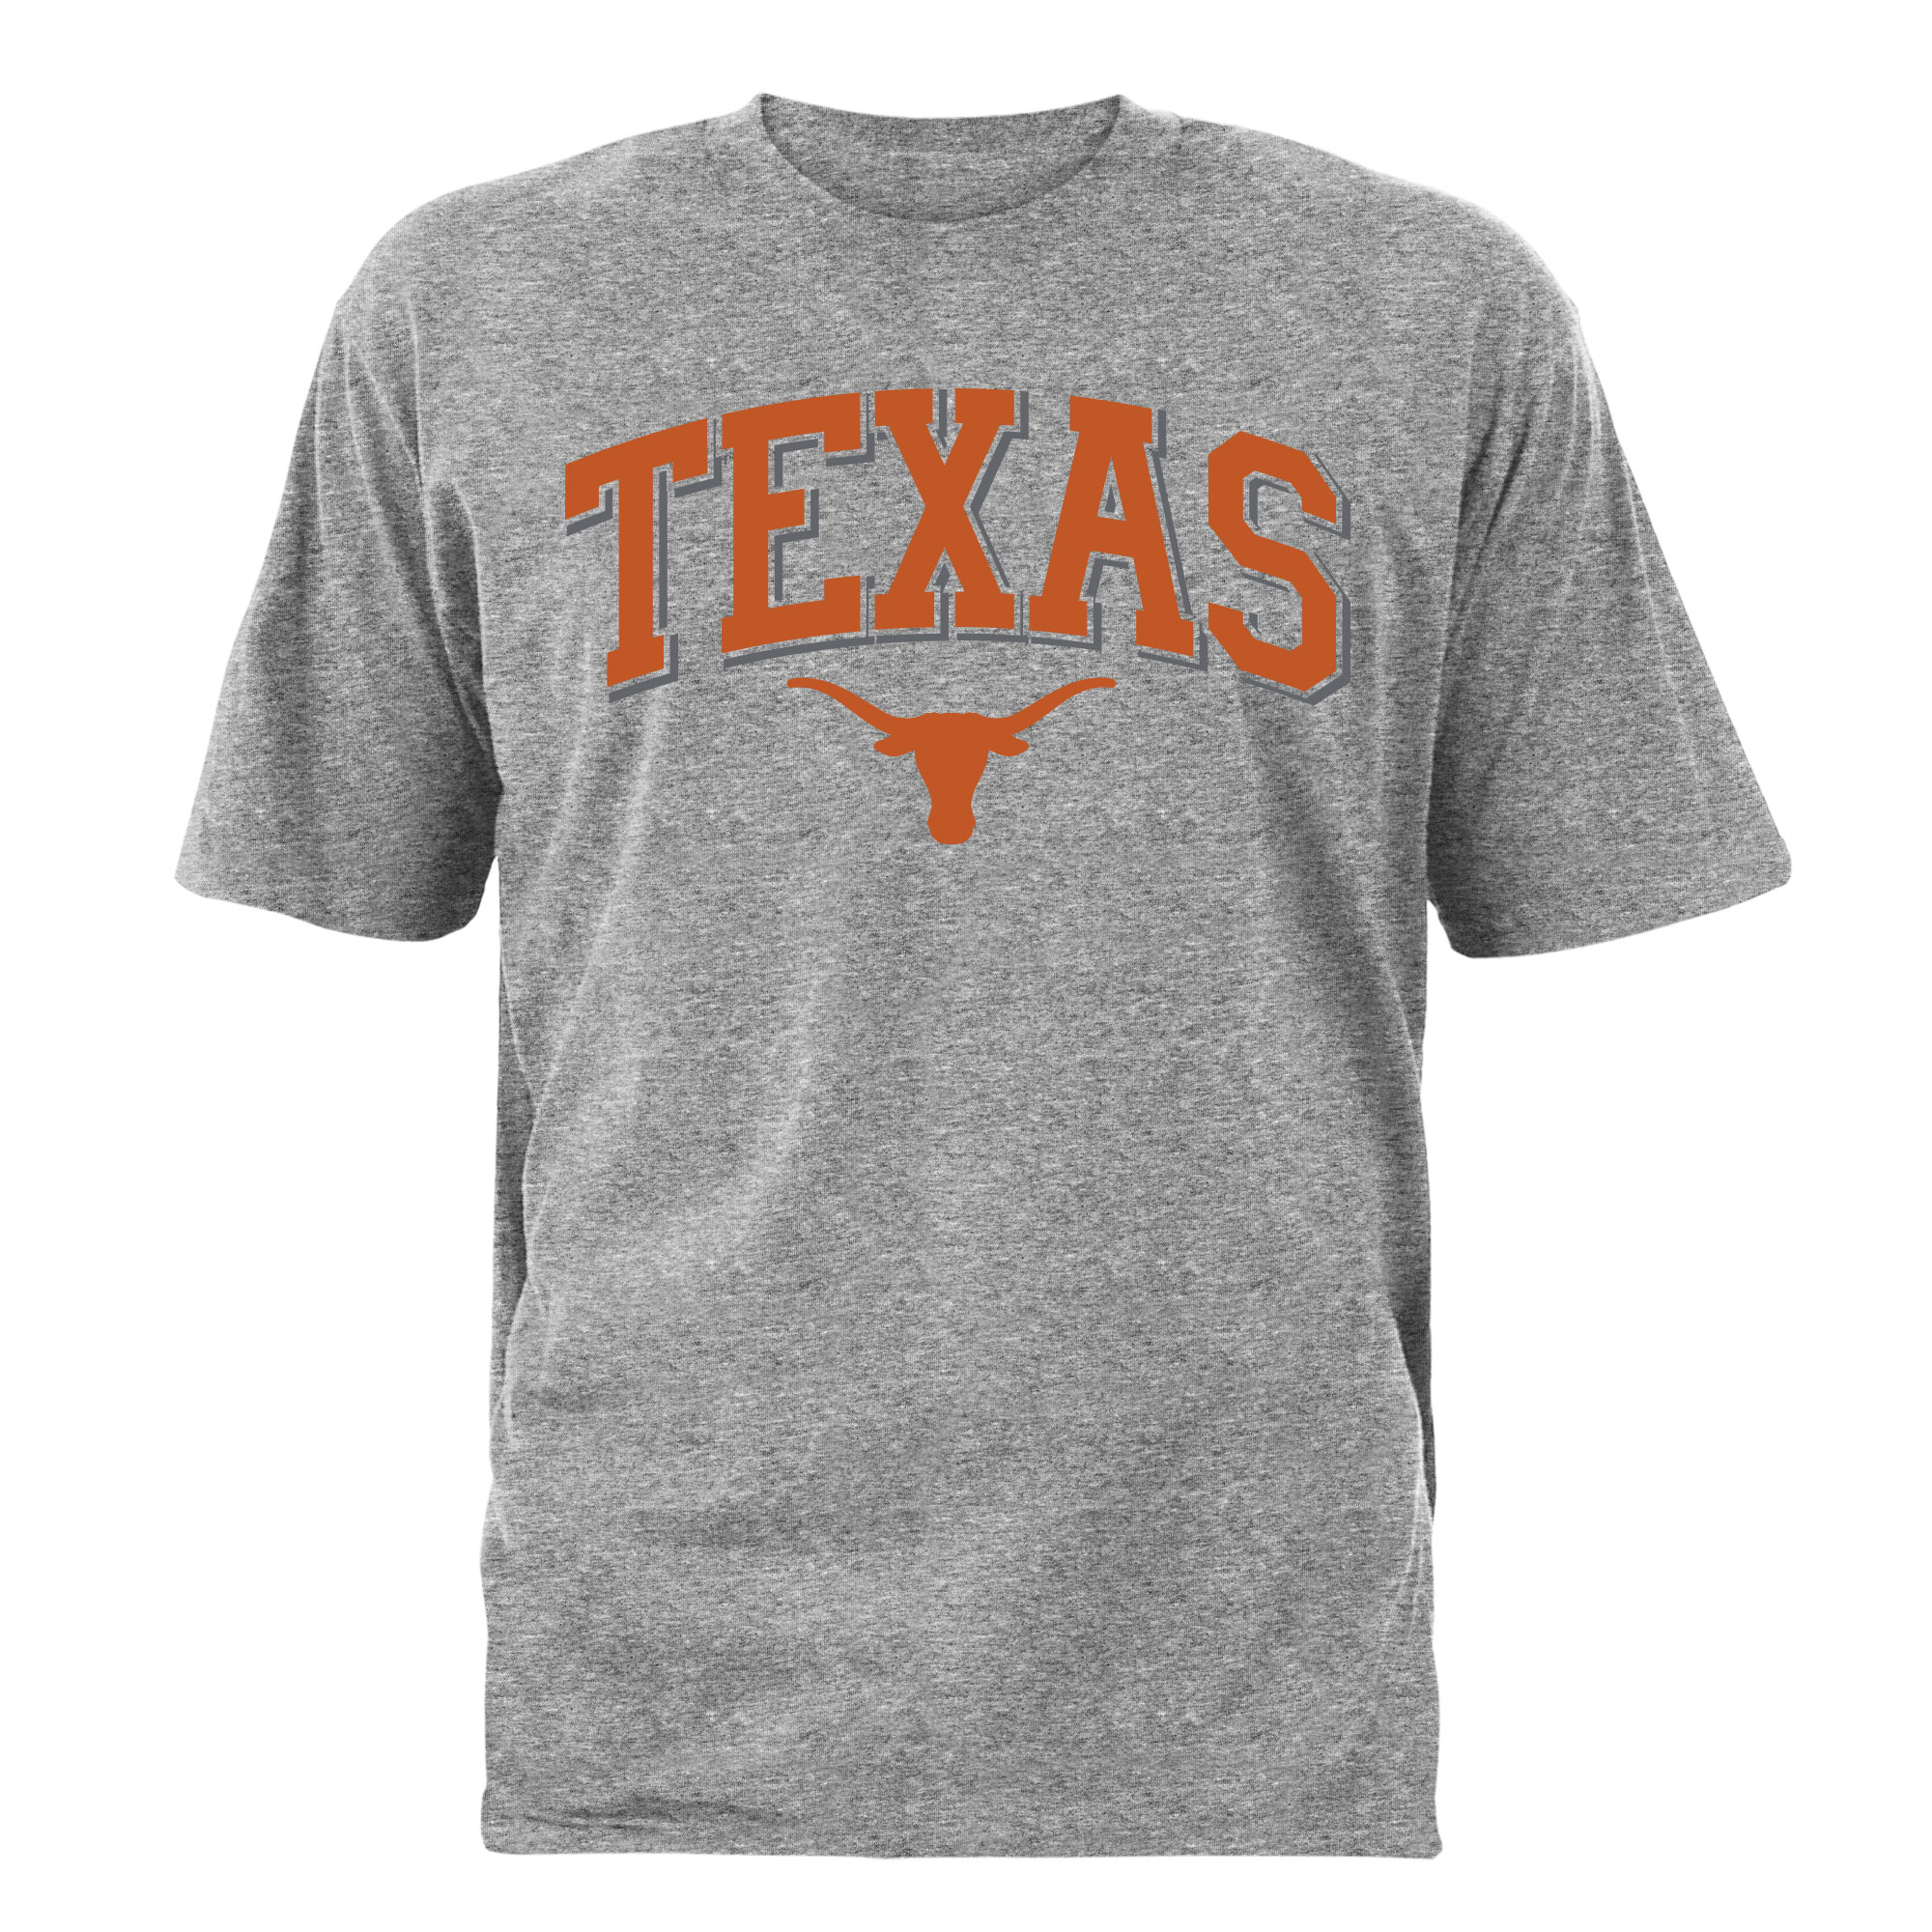 Men's Gray Texas Longhorns Tough Arch T-Shirt